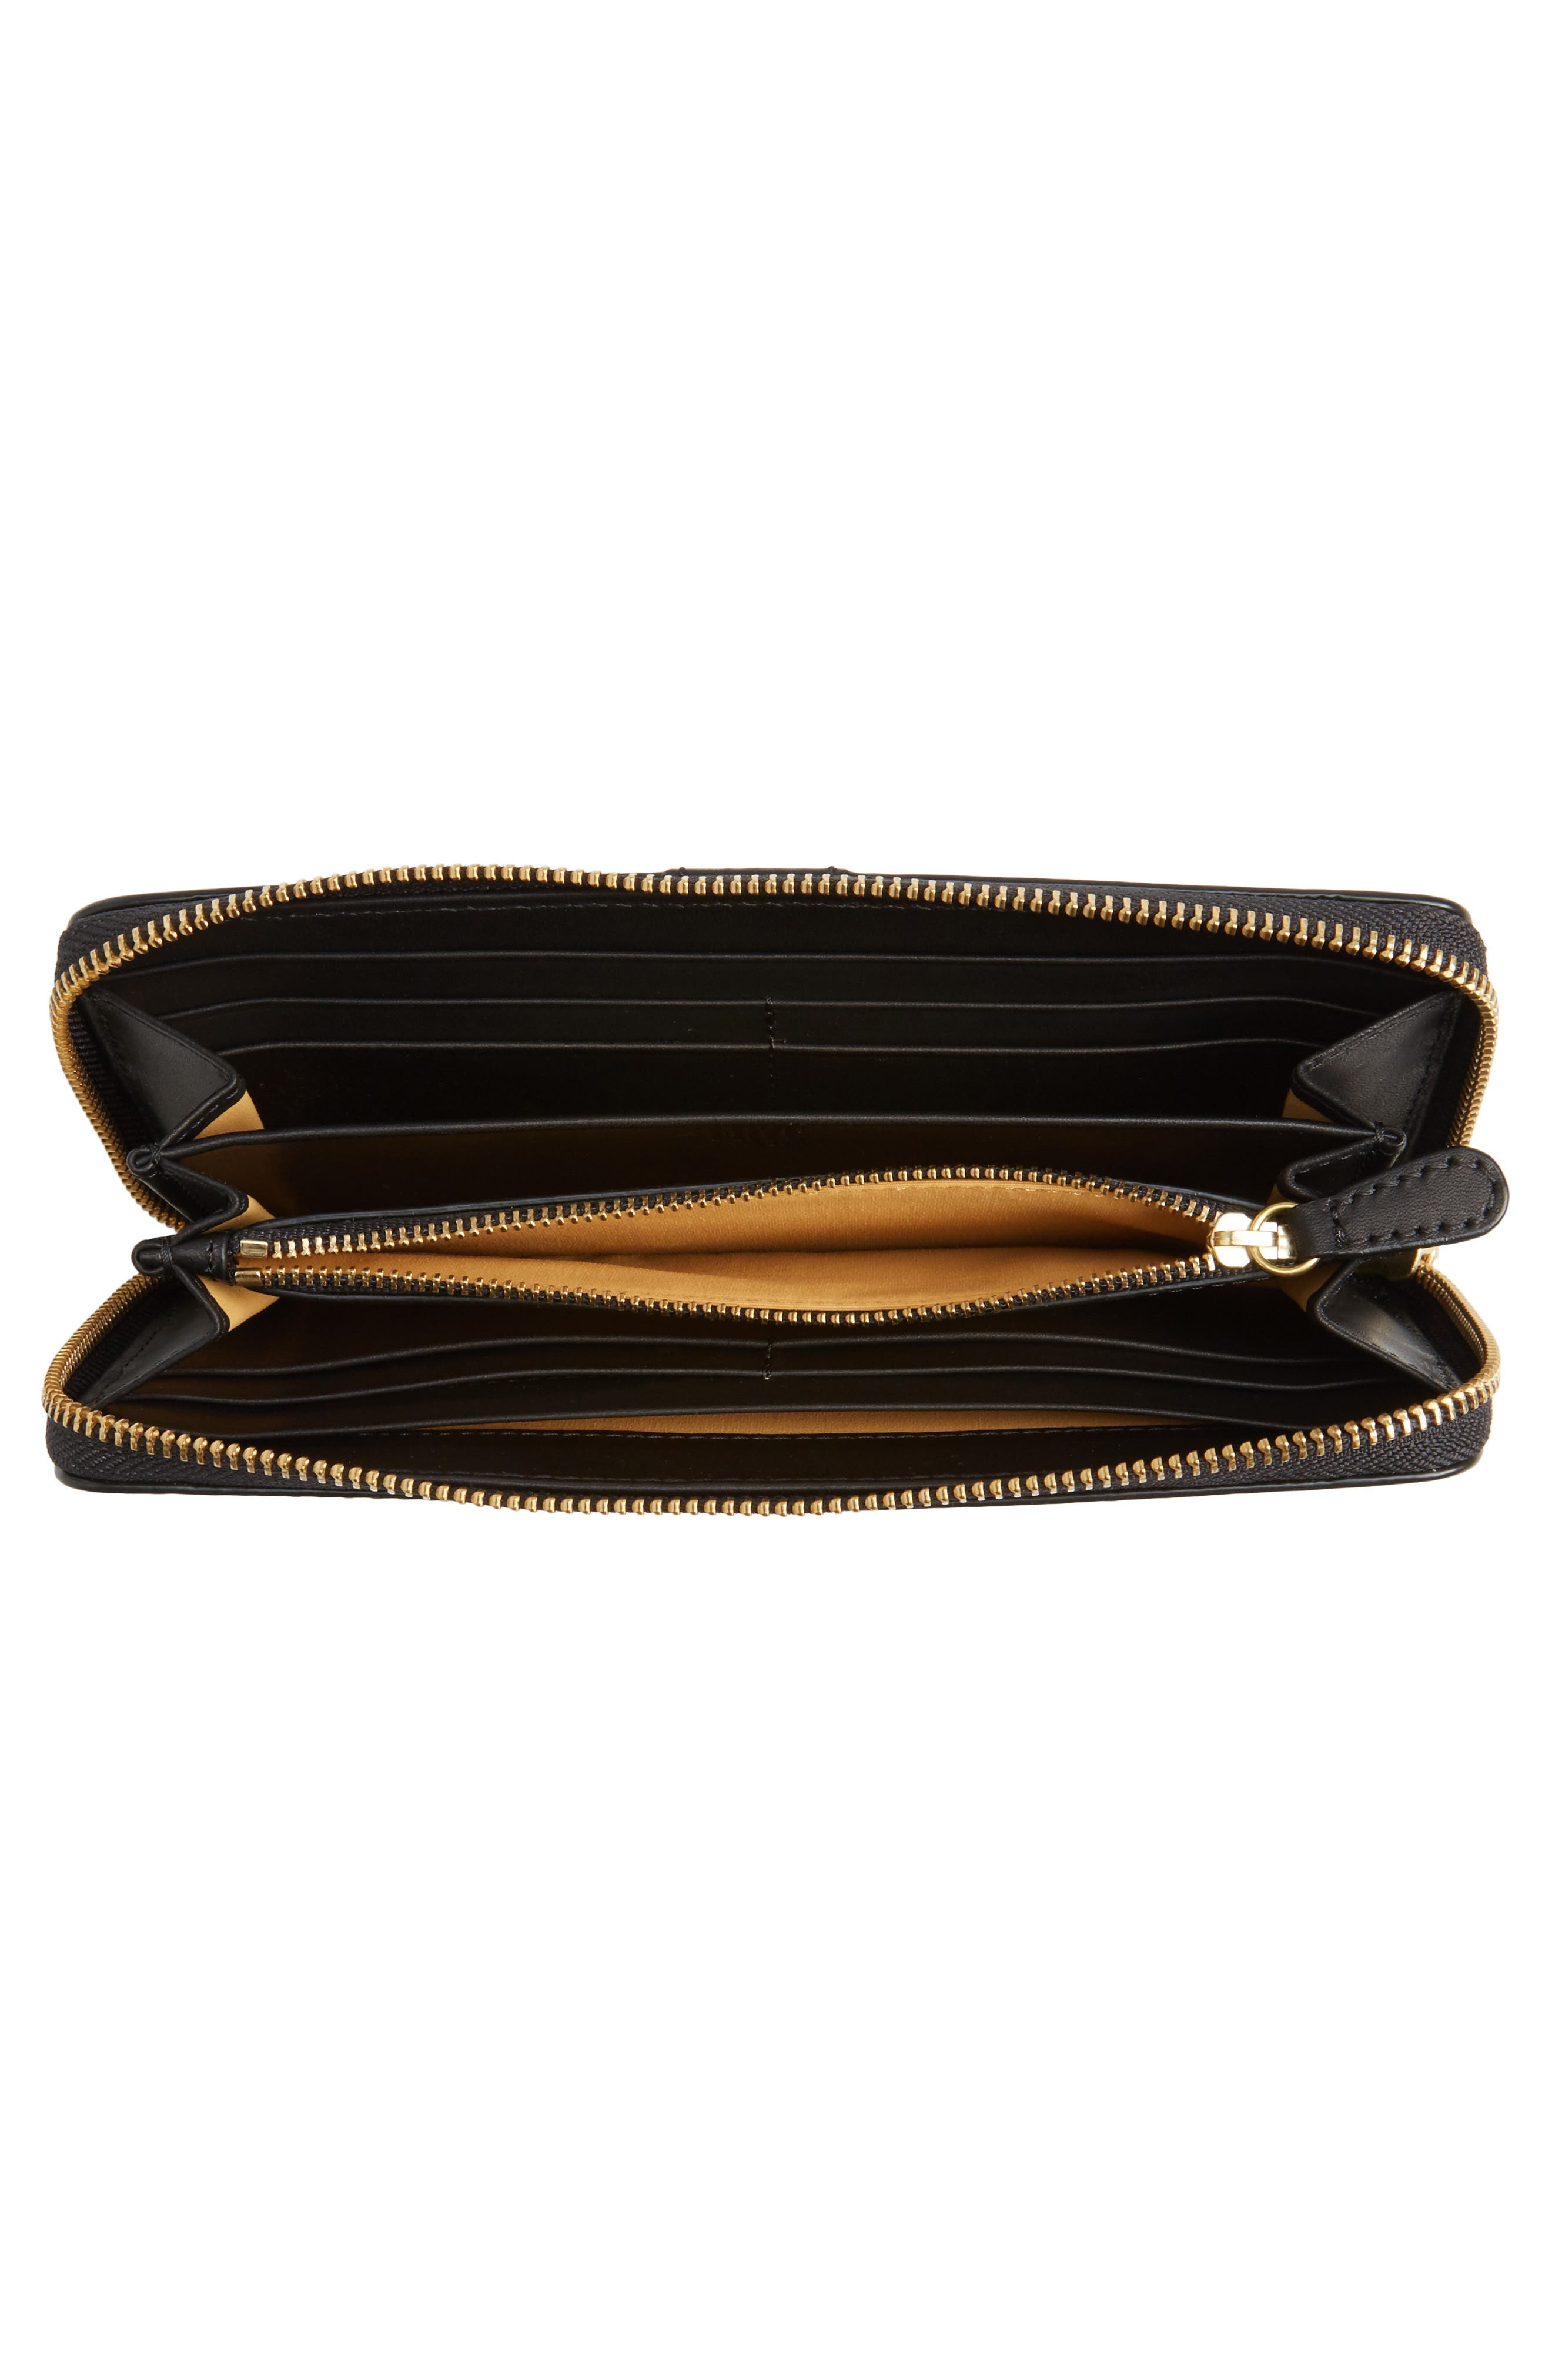 Ilana Harness Leather Zip Wallet,                             Alternate thumbnail 4, color,                             001